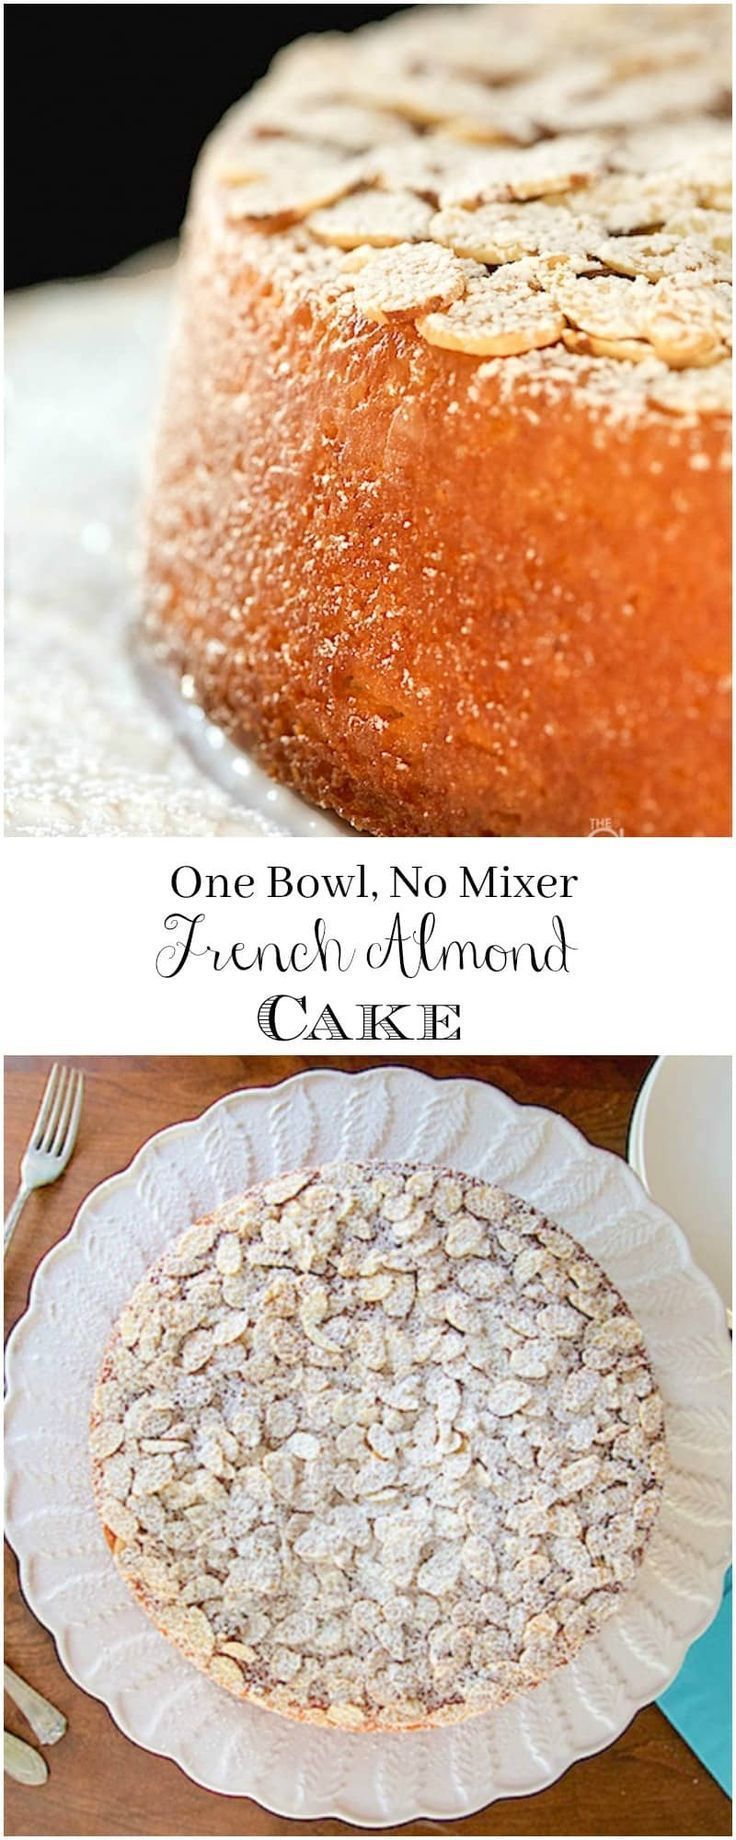 French Almond Cake  #cake #almond #french